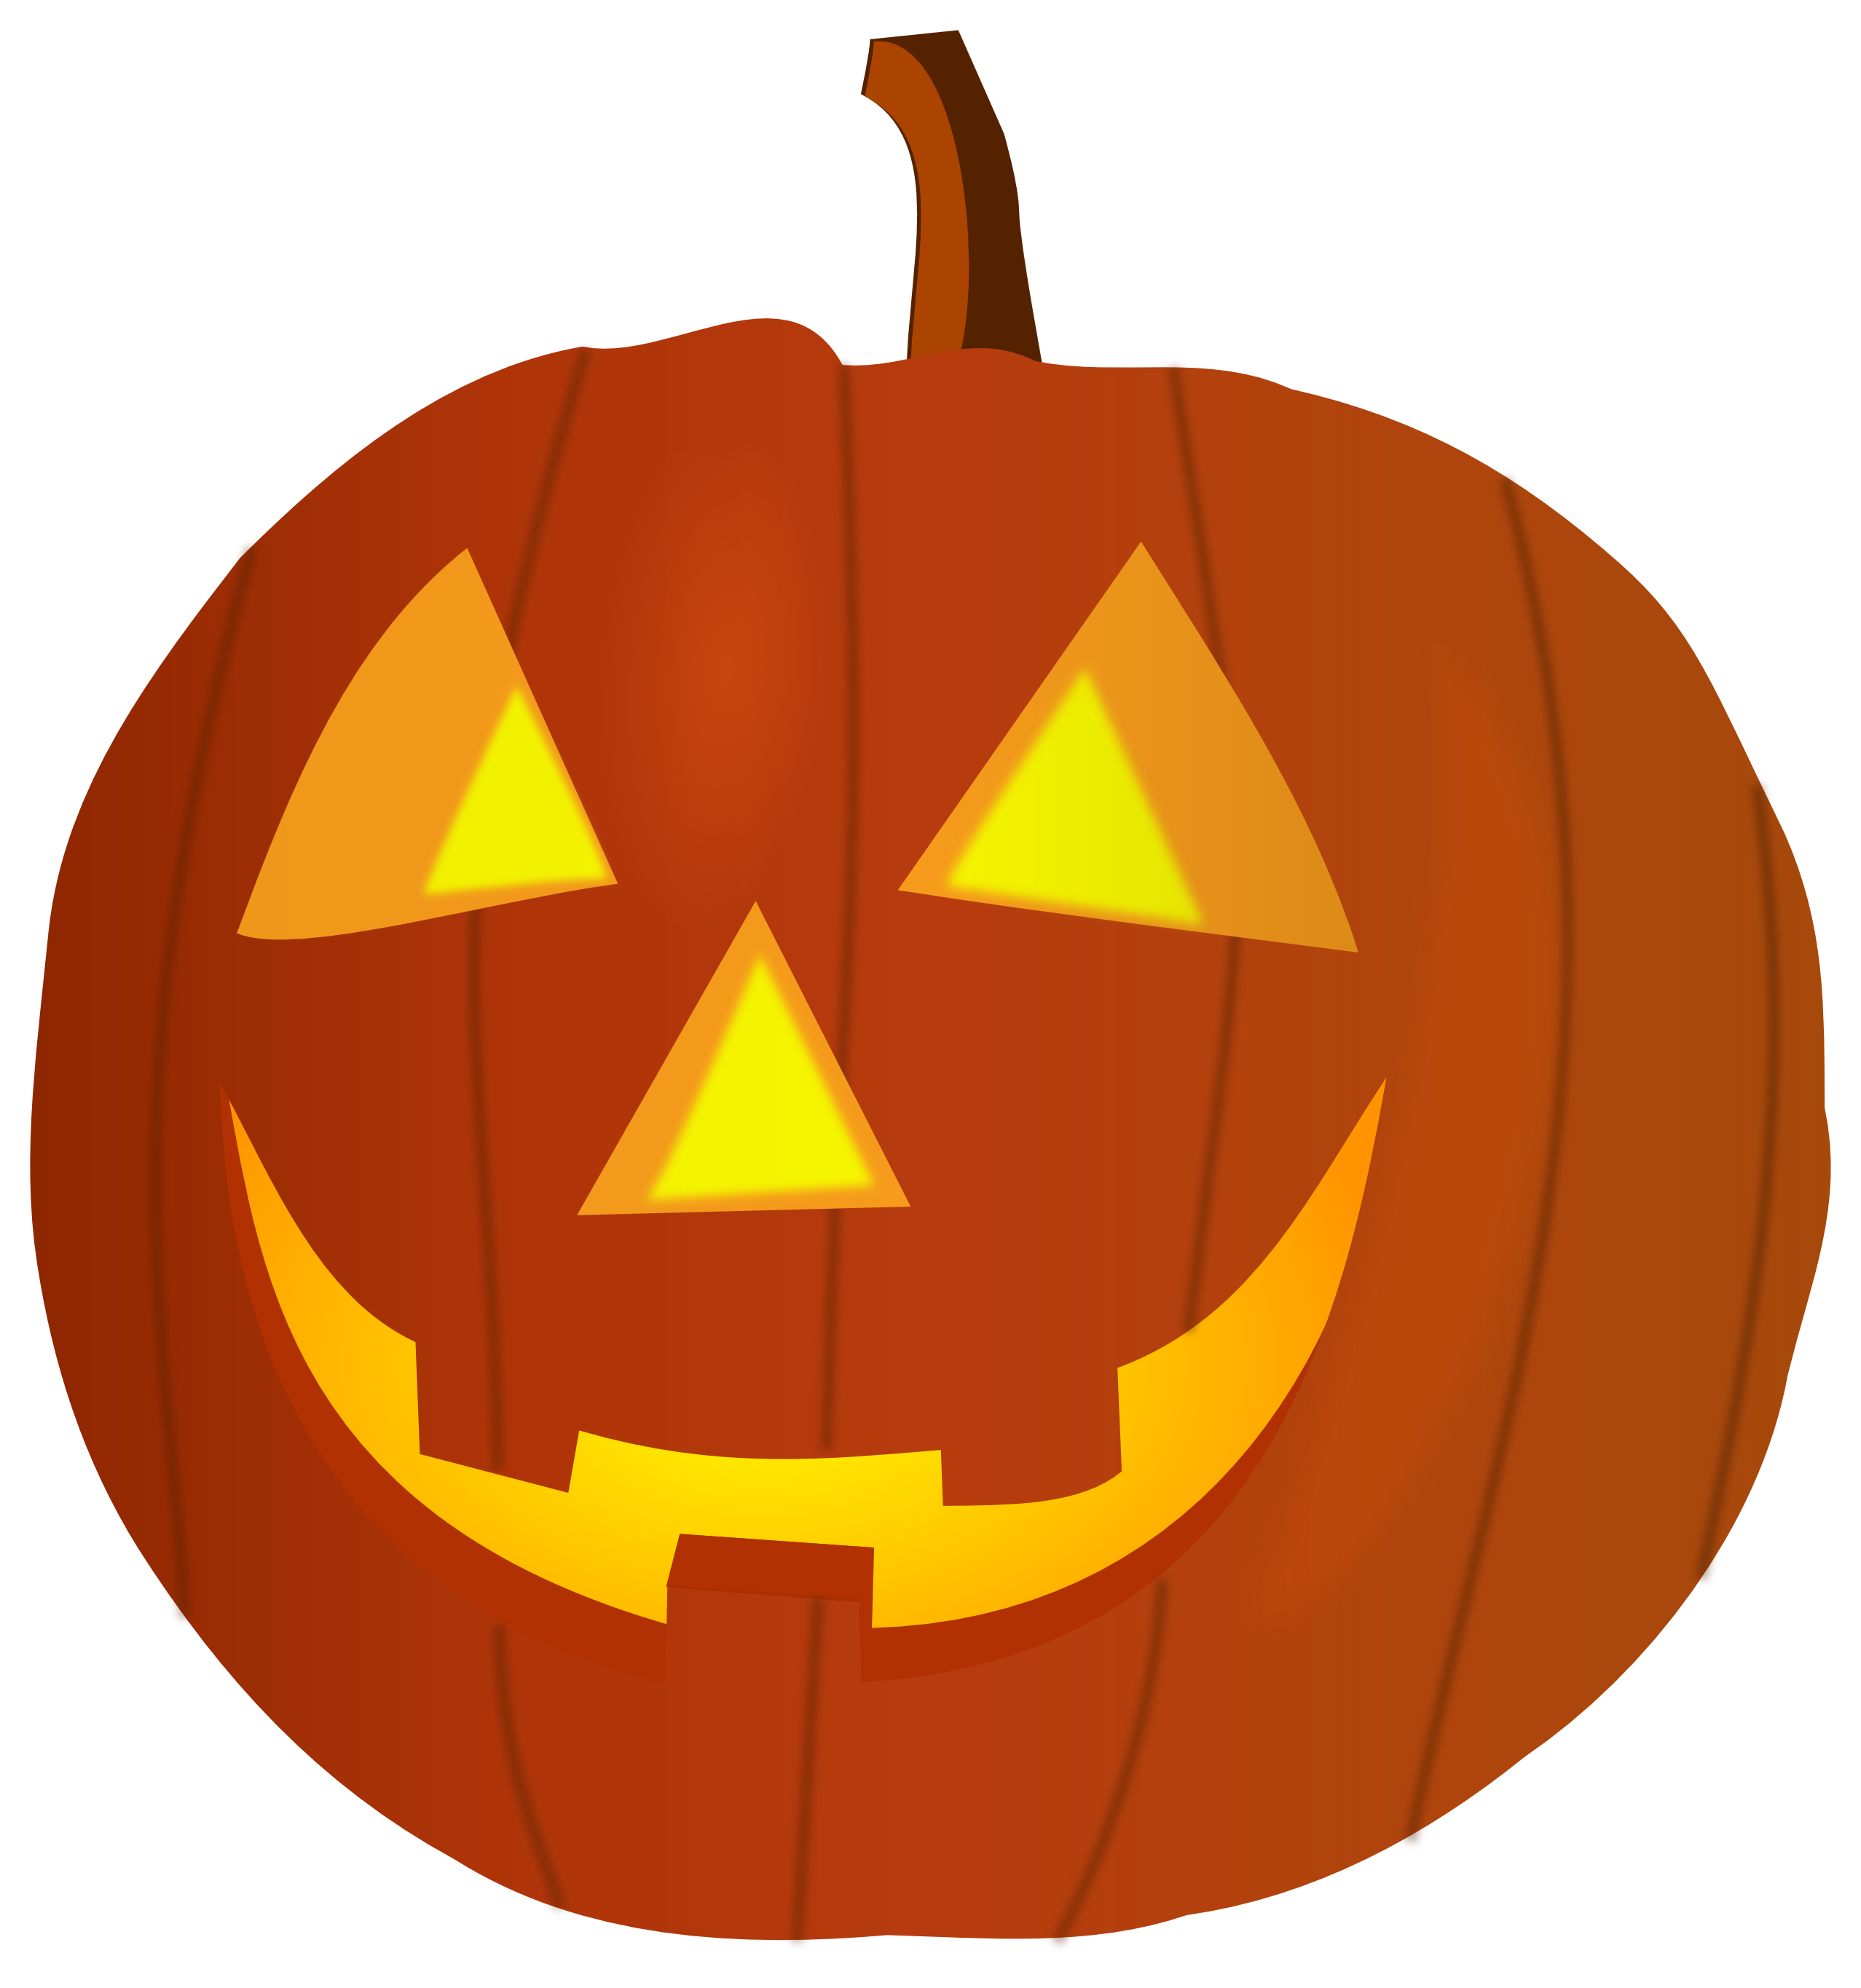 Cute pumpkin carving clipart. Halloween clip art panda